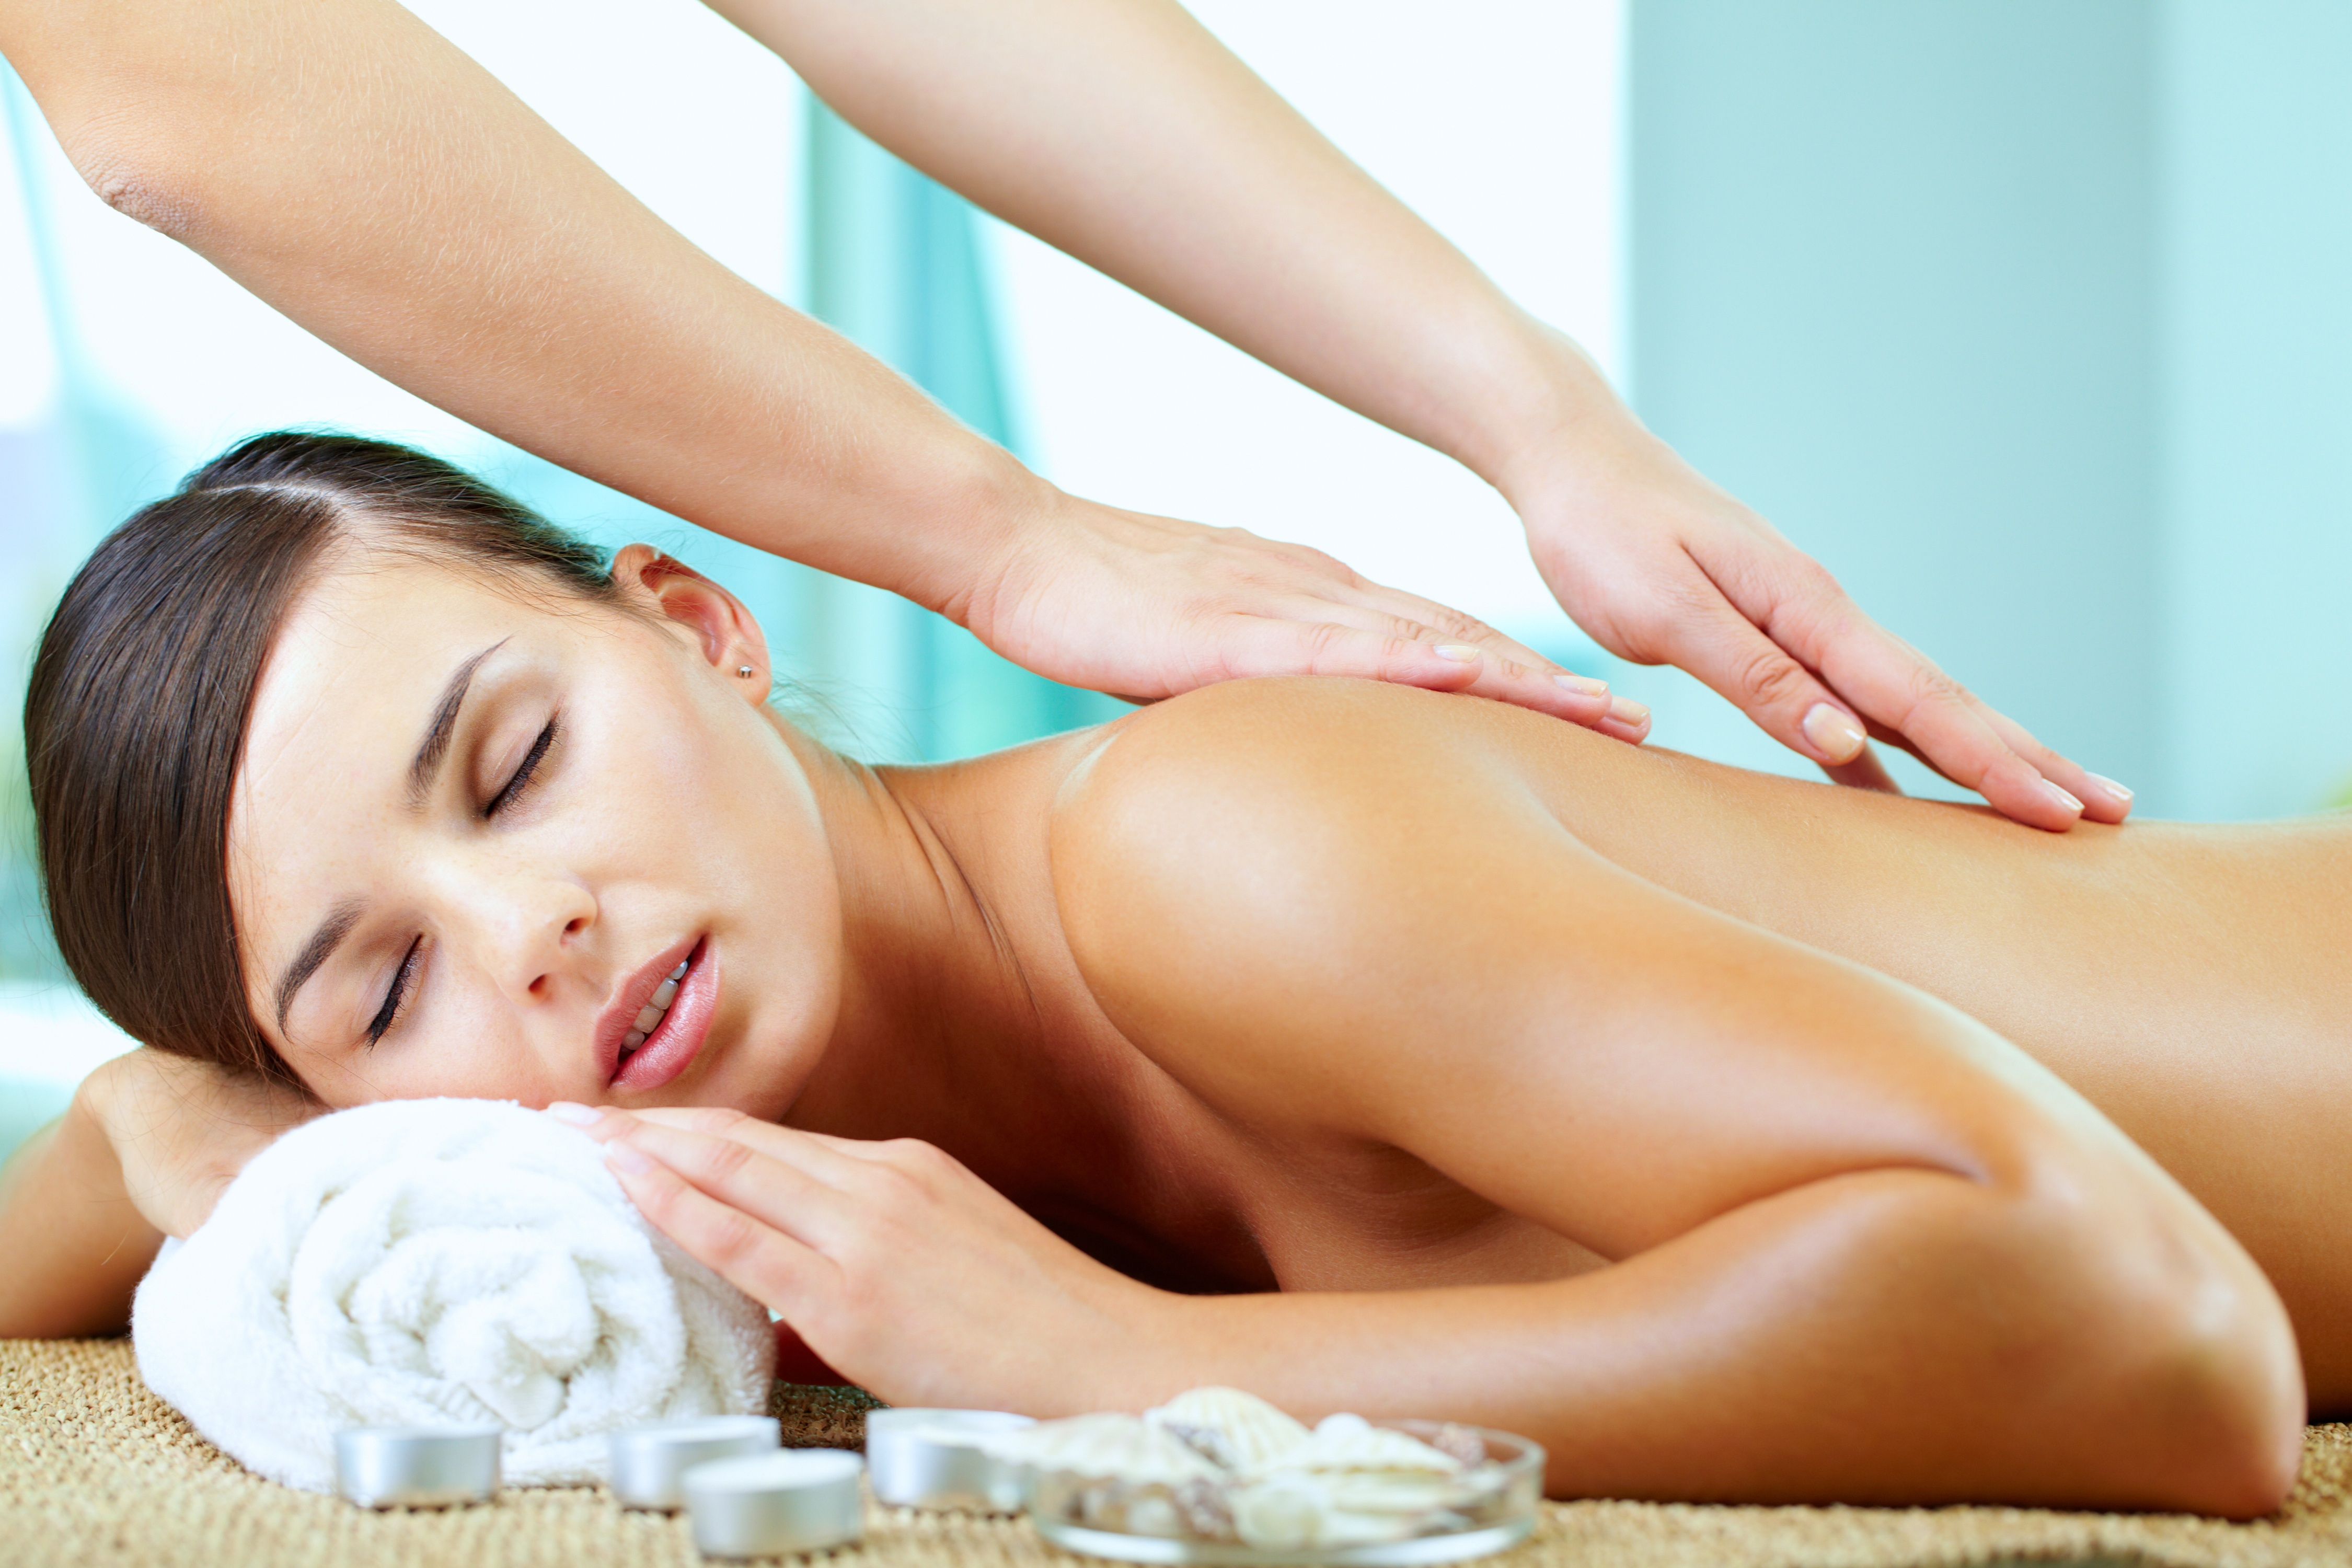 Massage Away the Winter Blues: Get Rid of Fatigue and Irritability